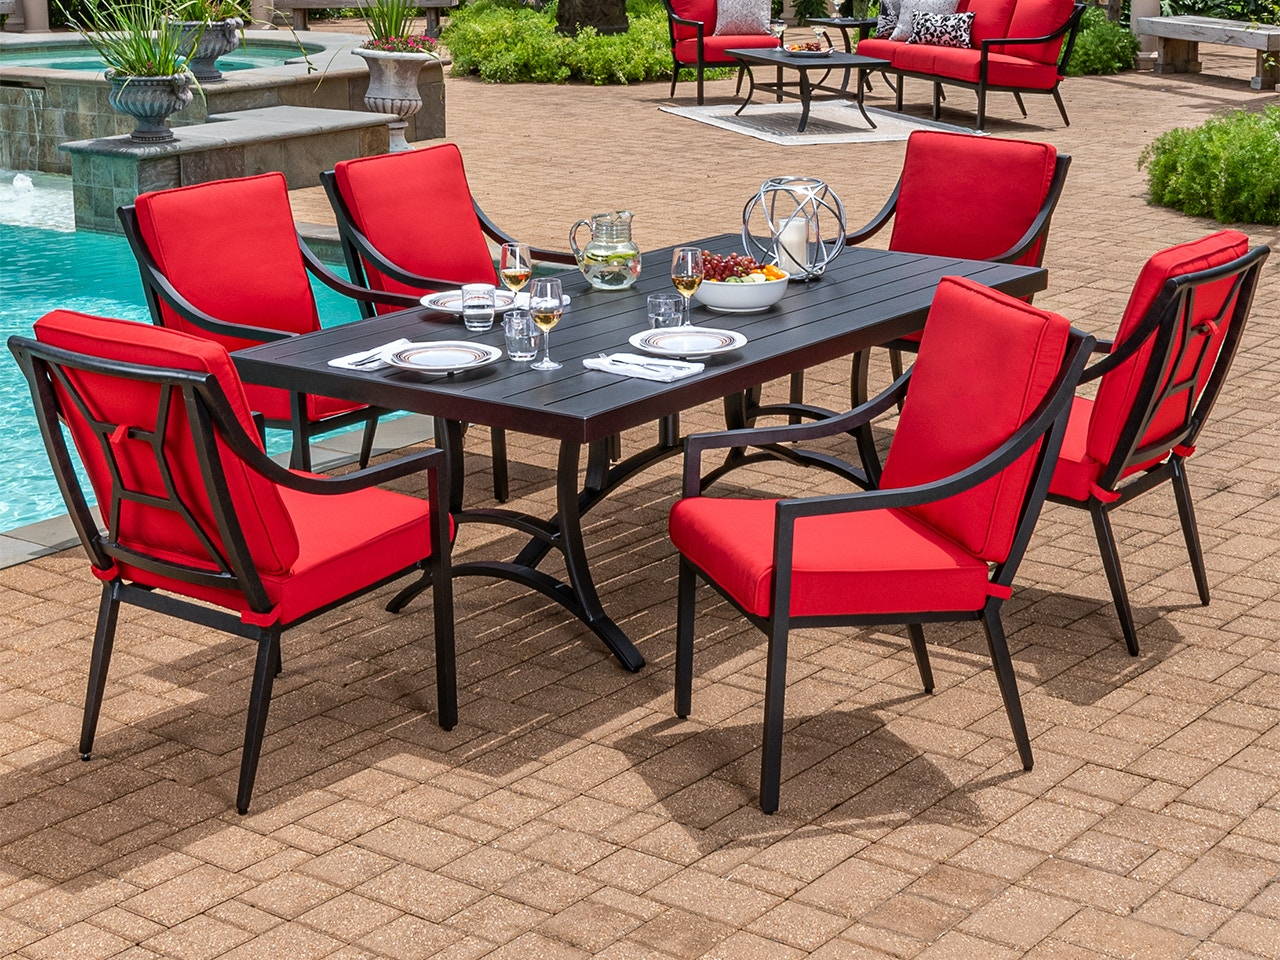 Living Room Hill Country Aged Bronze Aluminum And Jockey Red Cushion 7 Pc Dining With 84 X 42 In